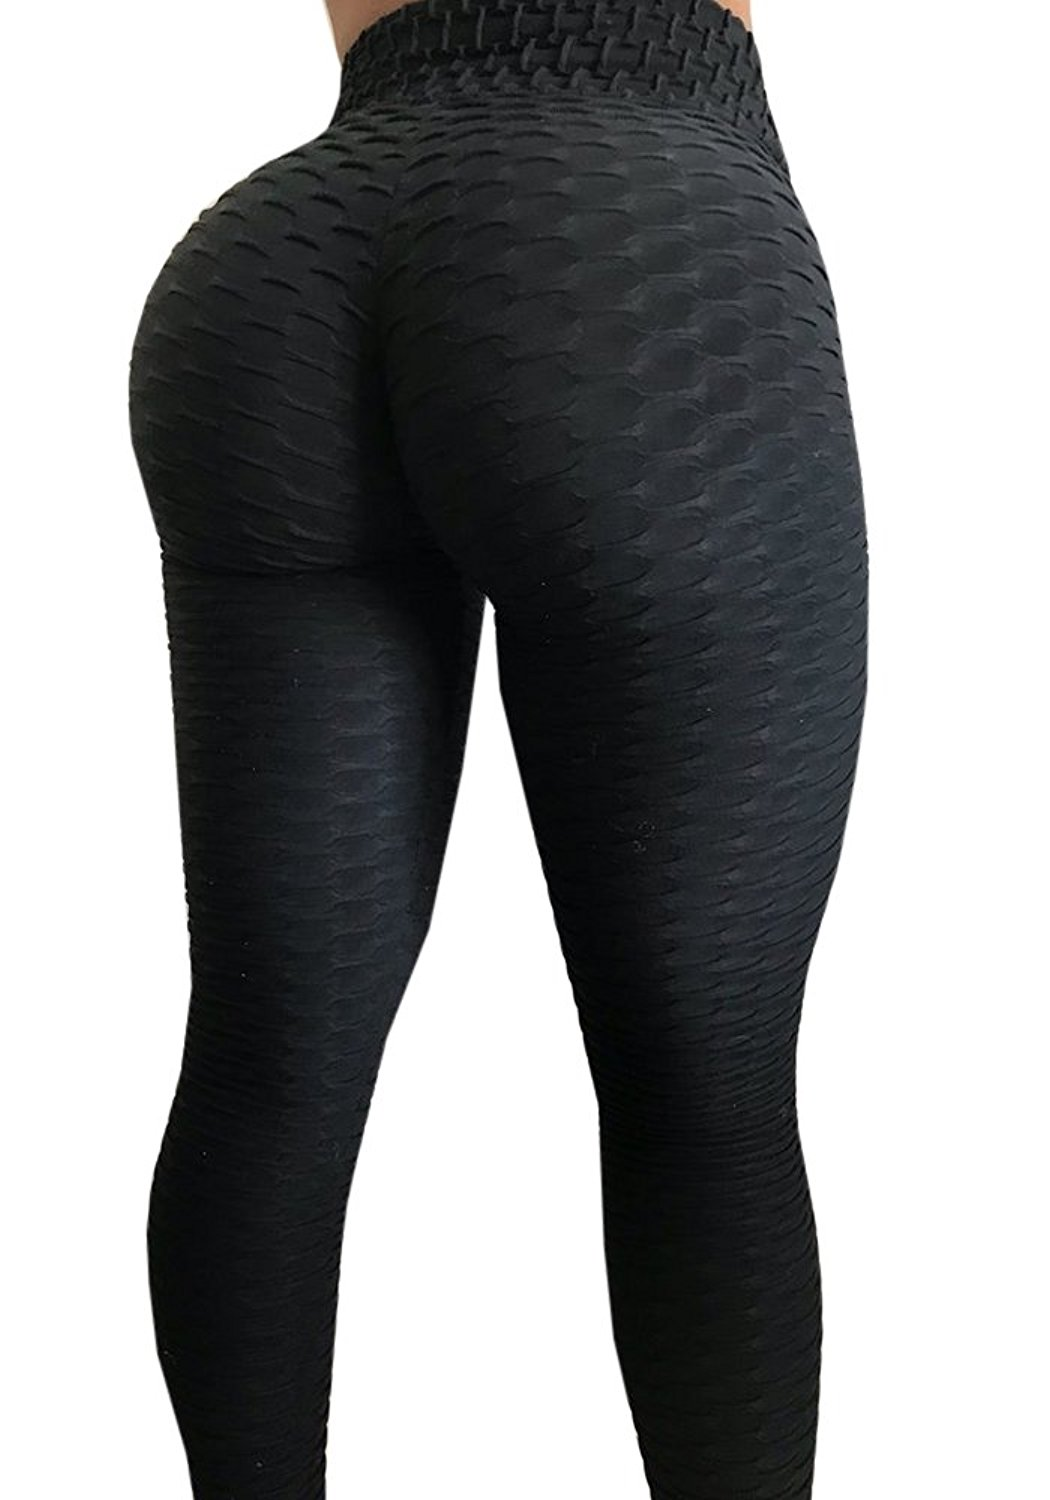 Women High Waist Ruched Butt Lift Workout Tights Stretchy Yoga Skinny Pants GIFT